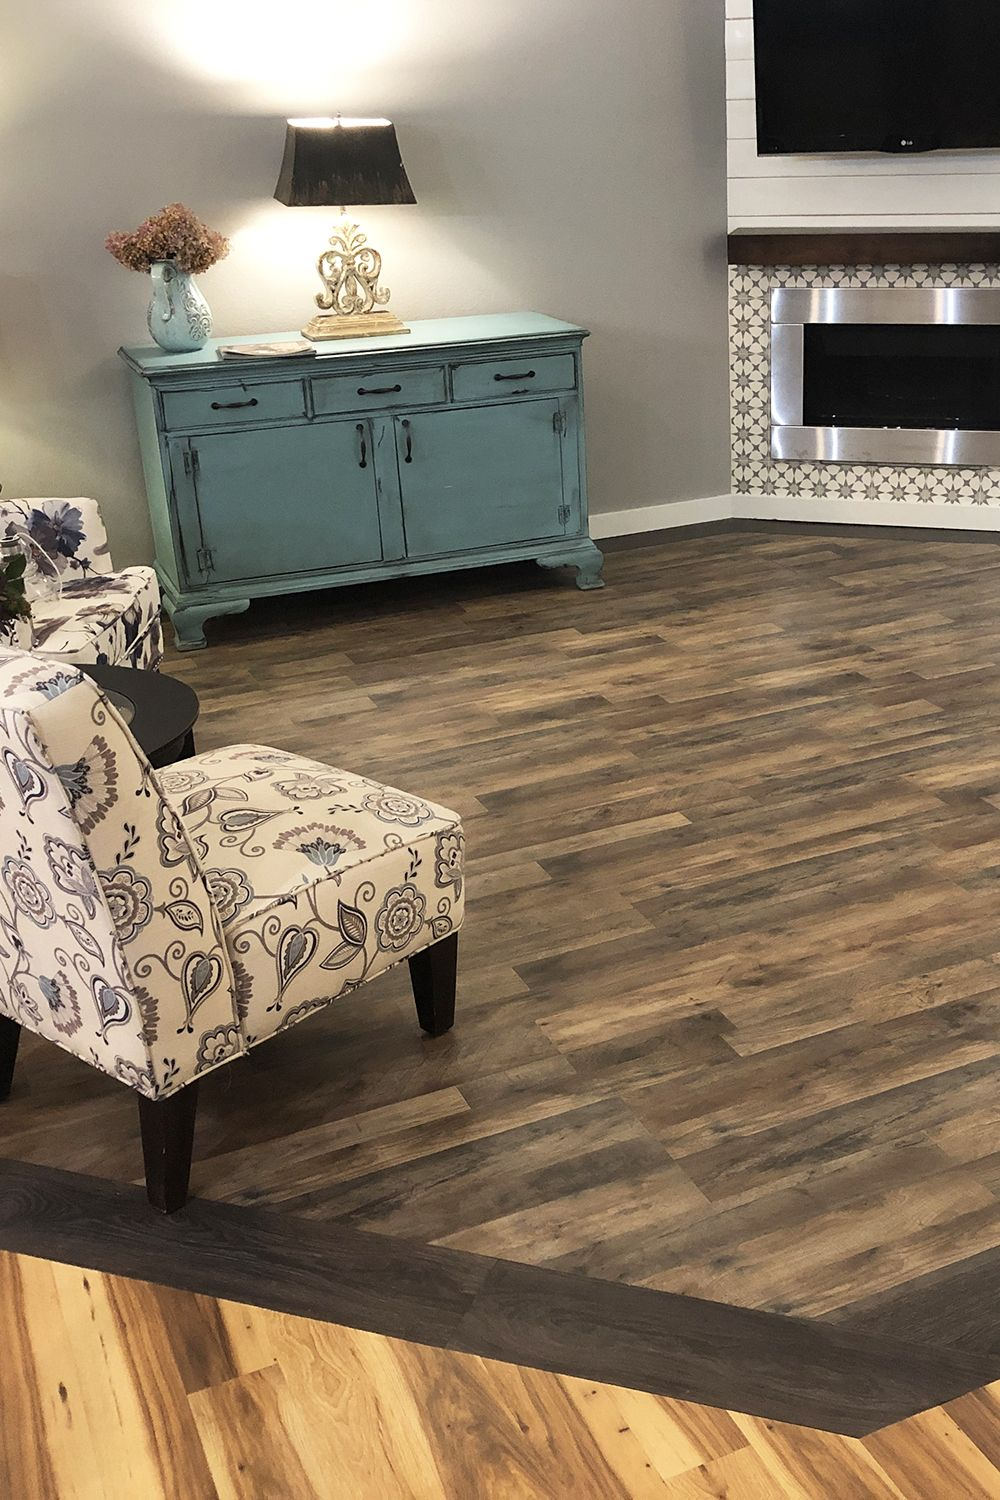 Laminate Floor Inlay Installed As Carpet Replacement For Family With Pets Laminate Flooring Colors Dark Laminate Floors Laminate Flooring